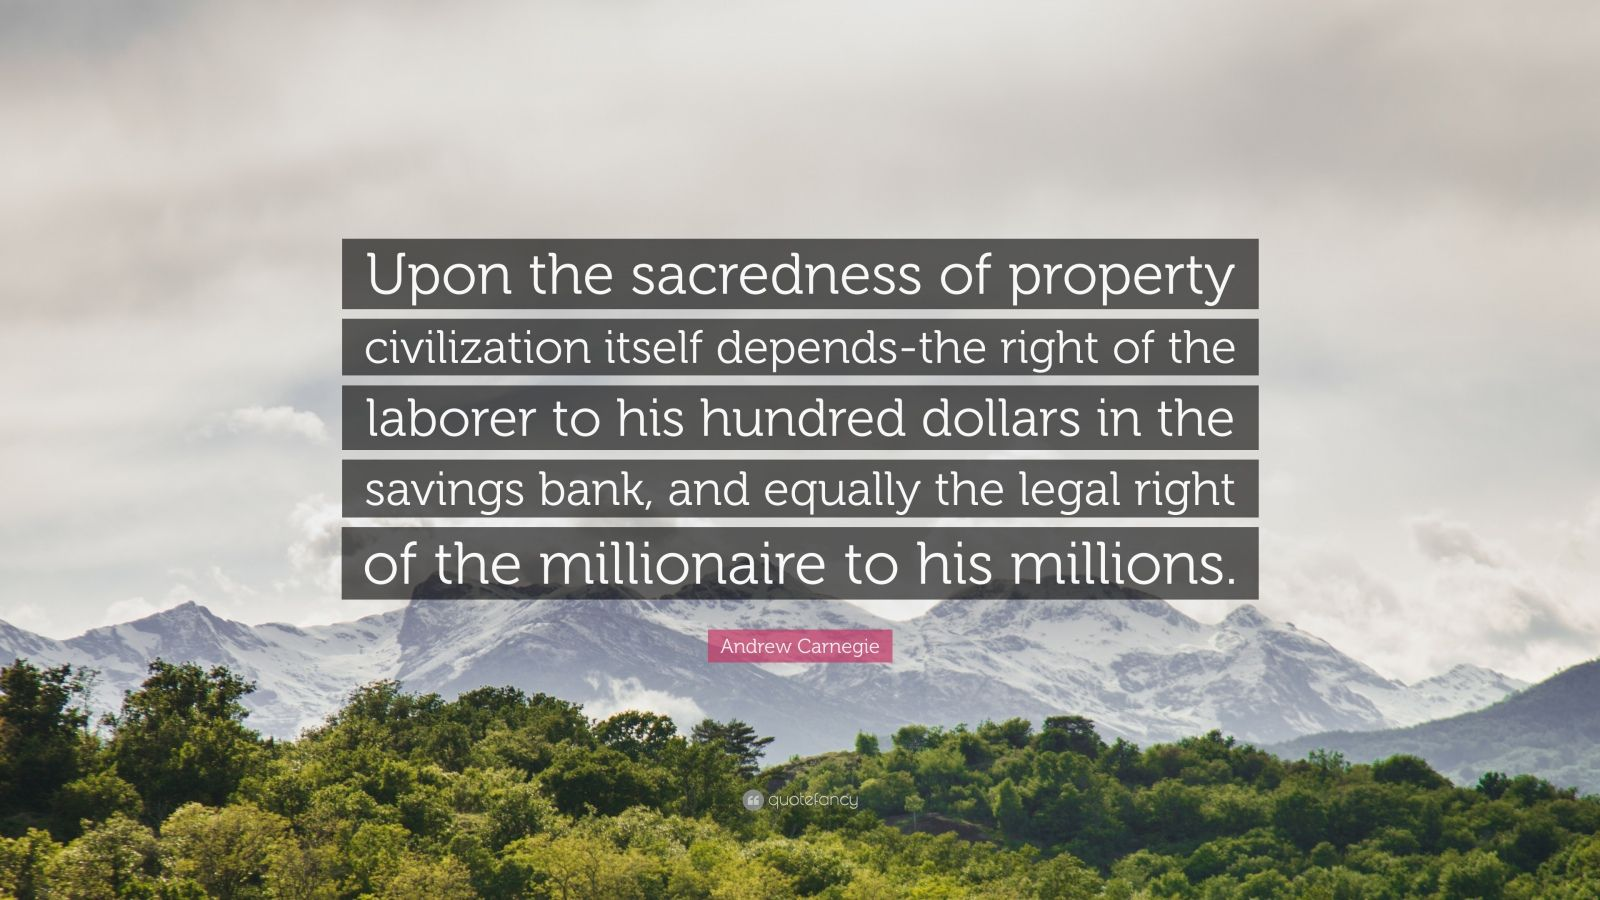 """Andrew Carnegie Quote: """"Upon the sacredness of property civilization itself depends-the right of the laborer to his hundred dollars in the savings bank, and equally the legal right of the millionaire to his millions."""""""